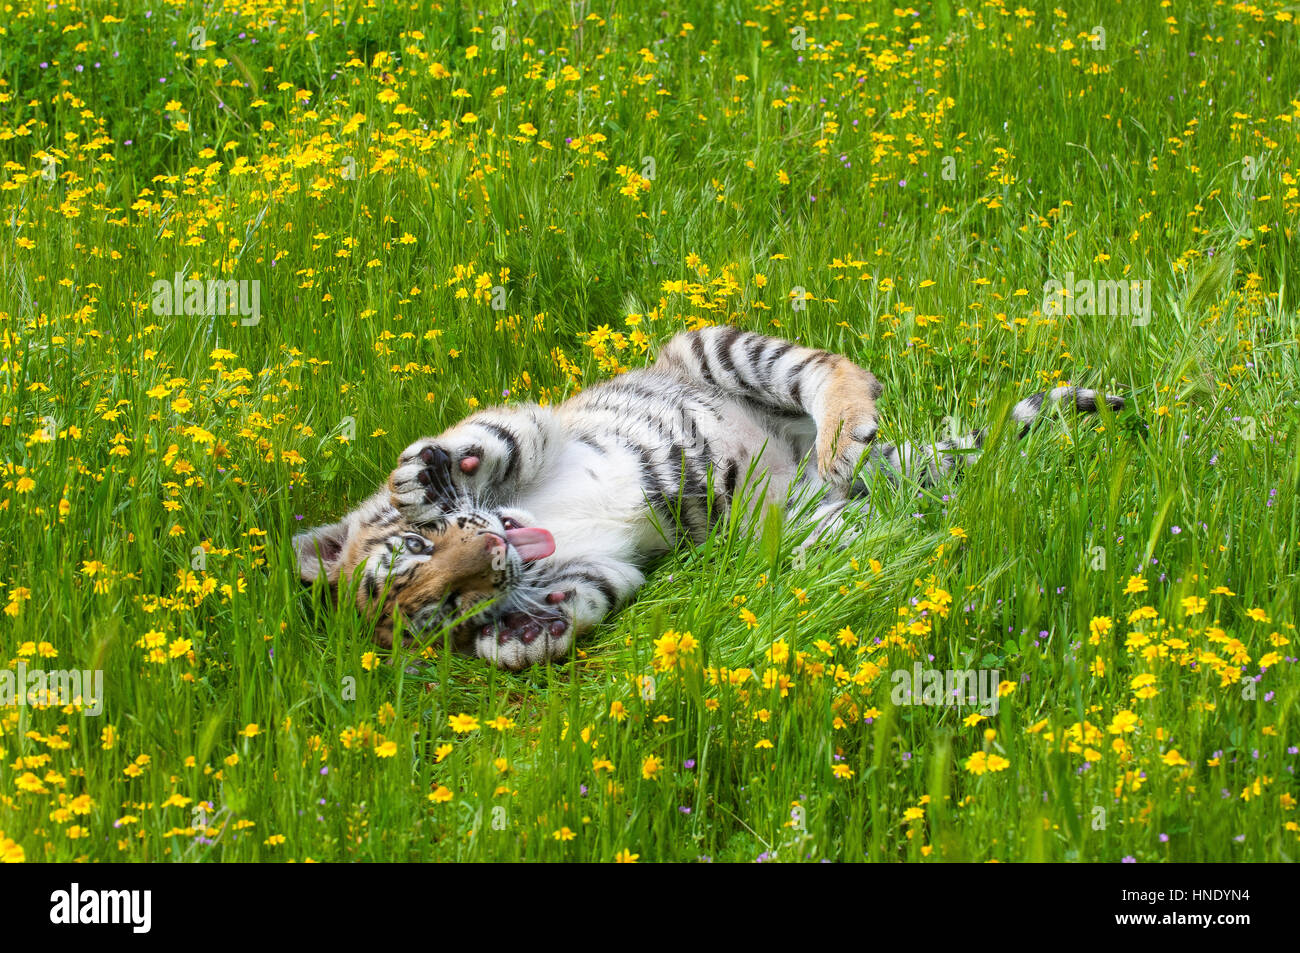 Amur Siberian Tiger Kitten Playing In Yellow And Green Flowers